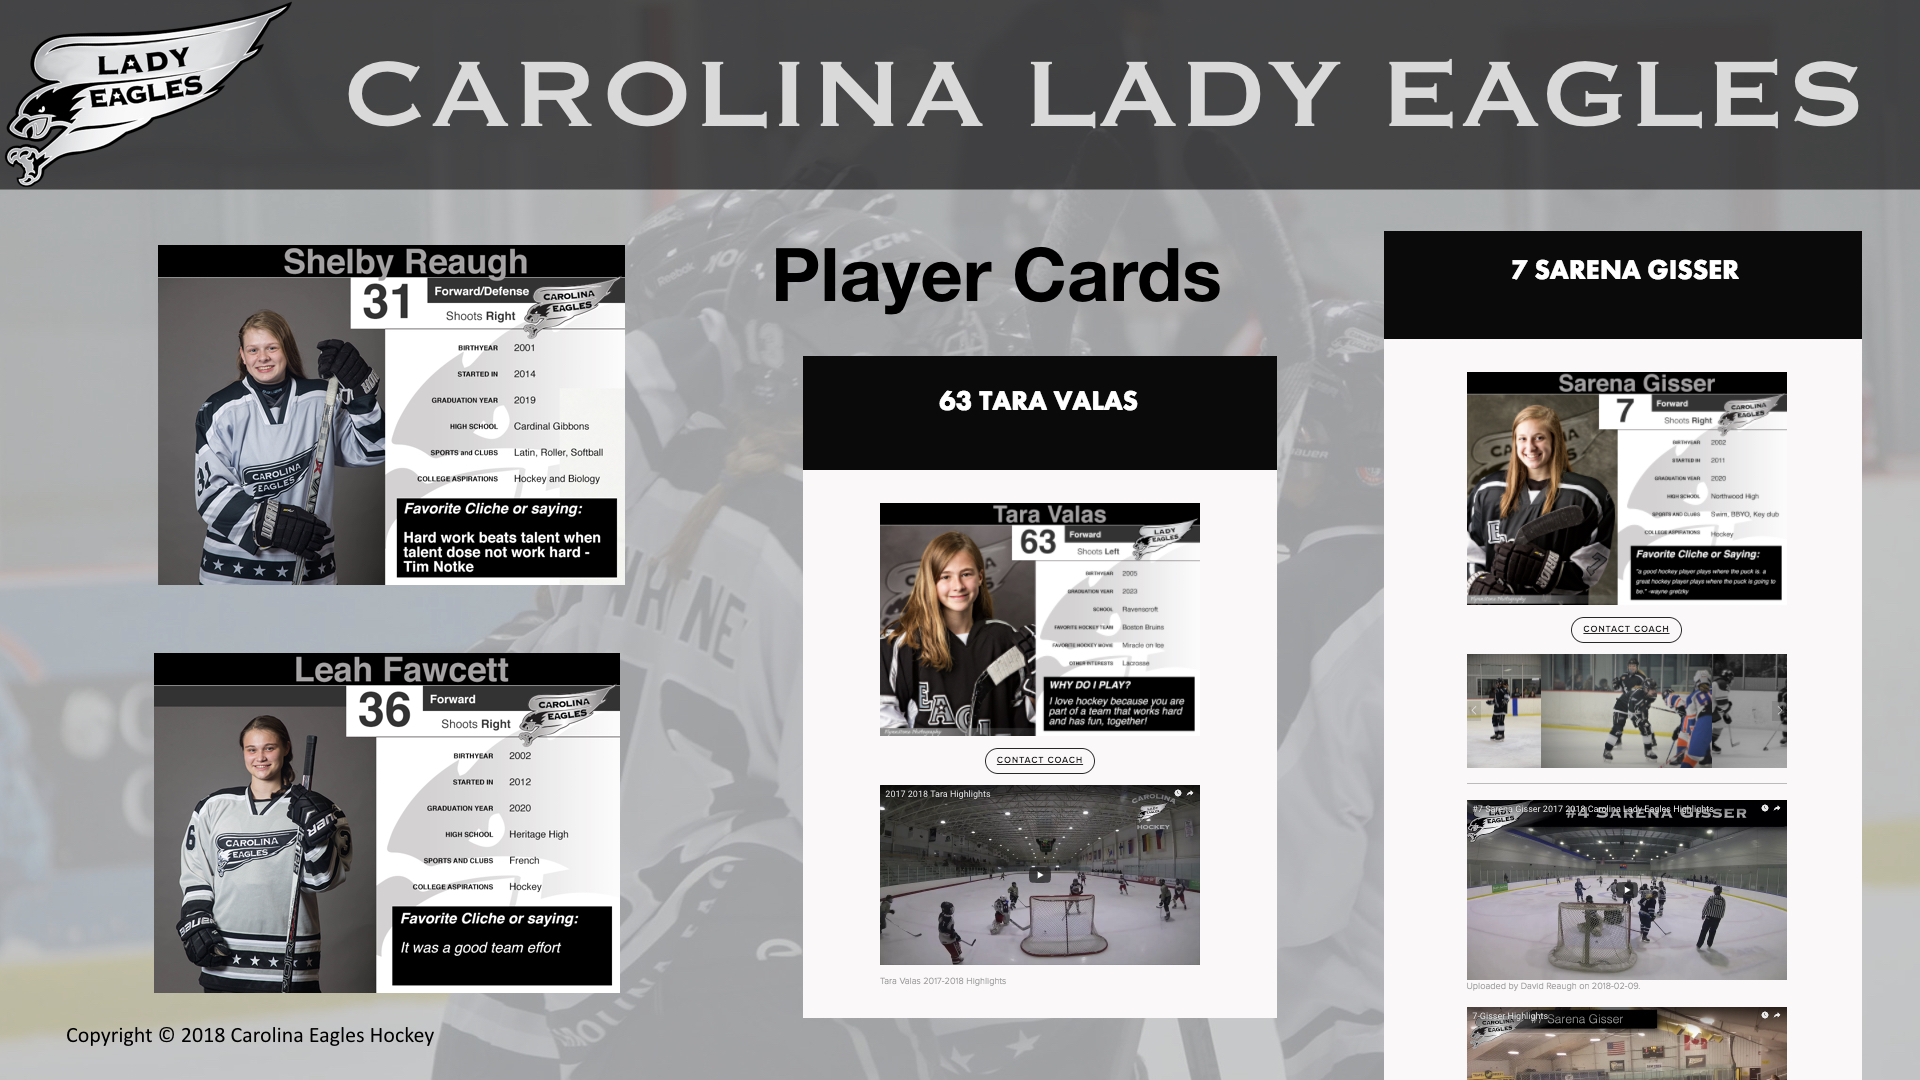 Player Cards and Highlights